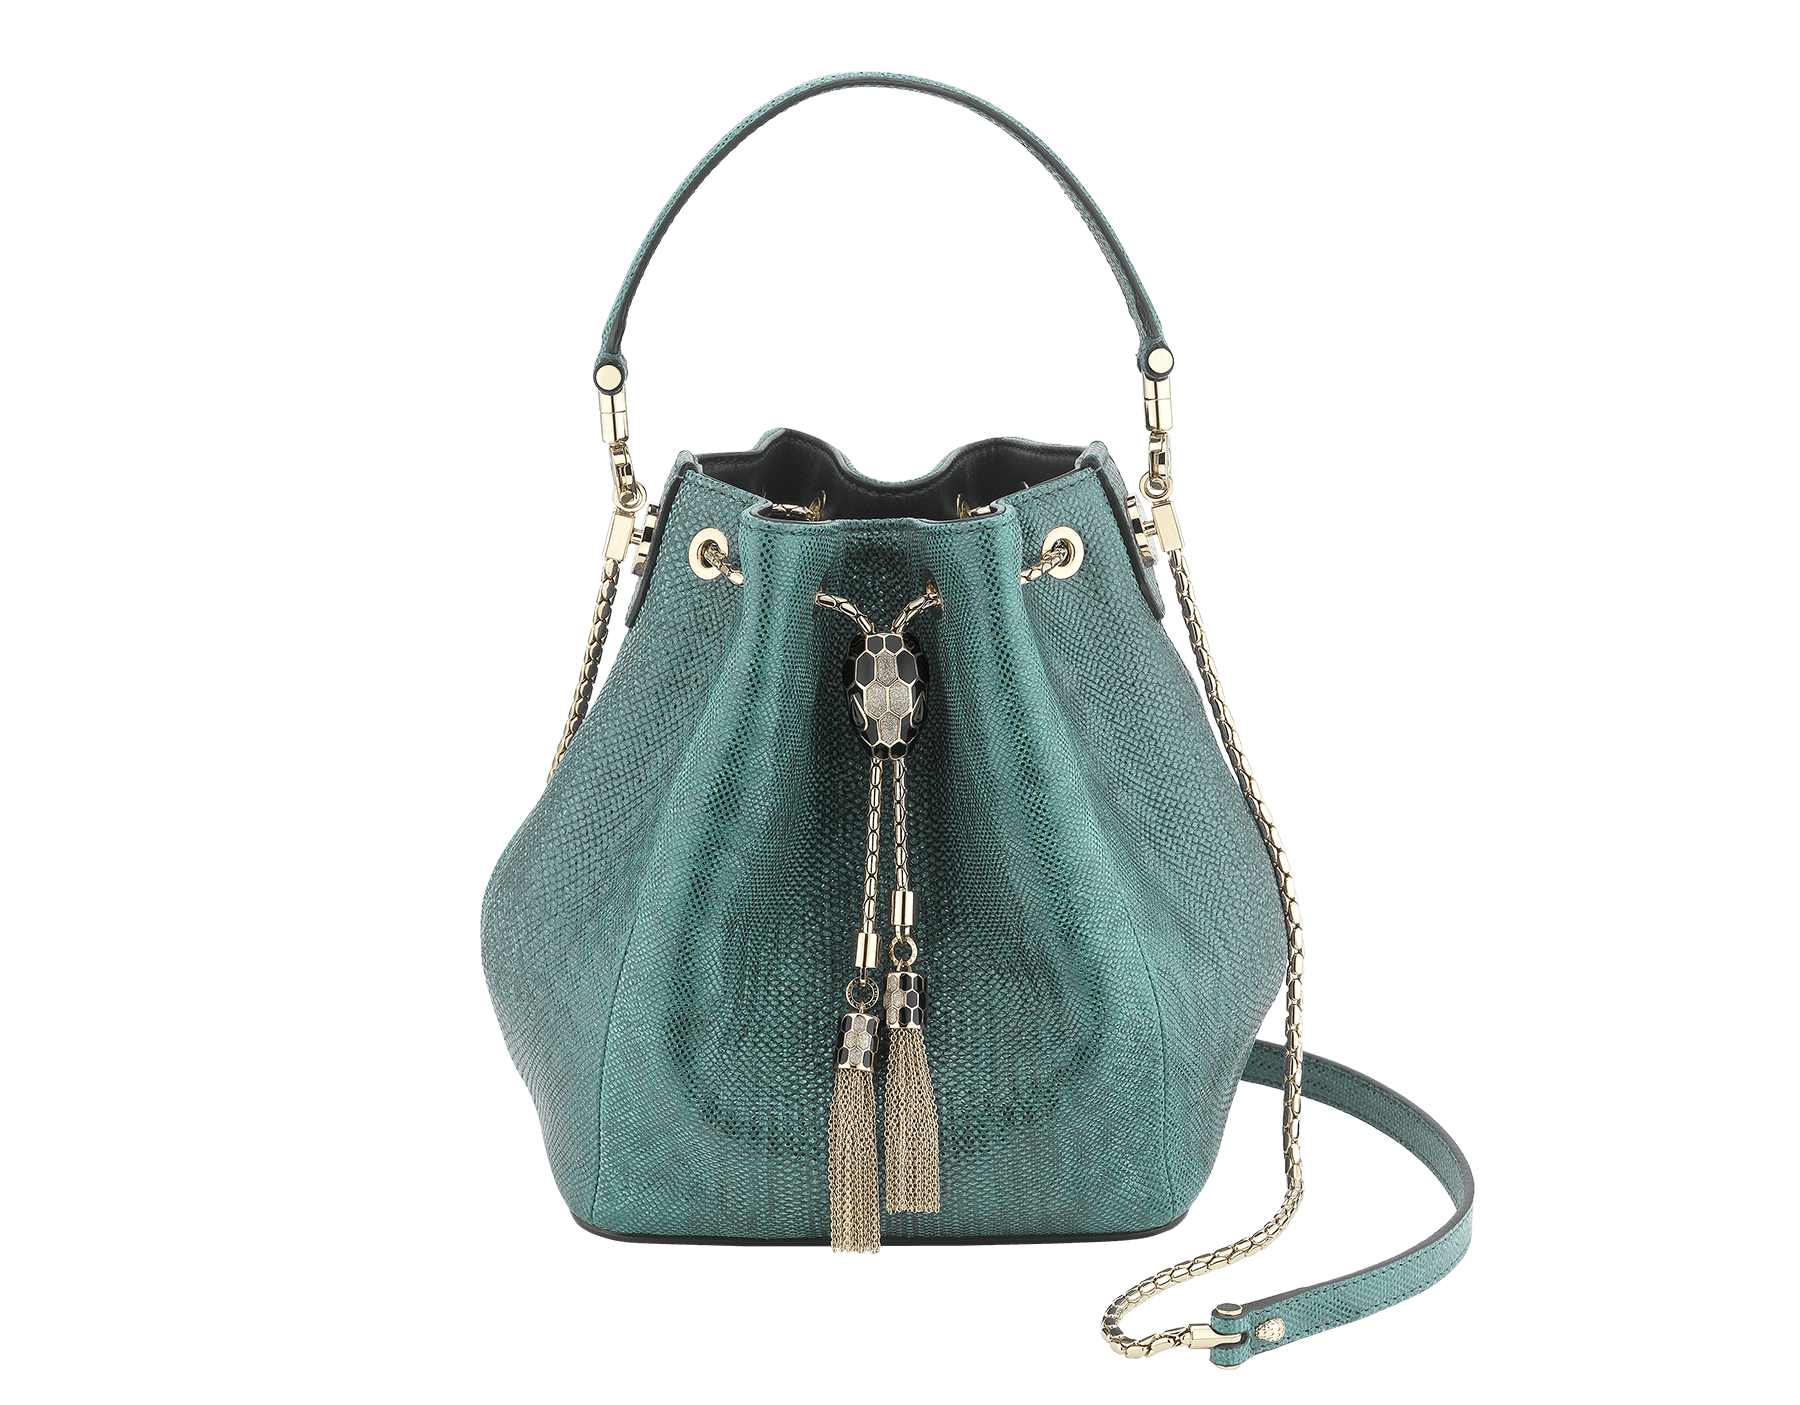 Serpenti Forever bucket bag in forest emerald metallic karung skin and black nappa inner lining. Snakehead closure in light gold plated brass decorated with black and glitter forest emerald enamel, and black onyx eyes. 287839 image 1